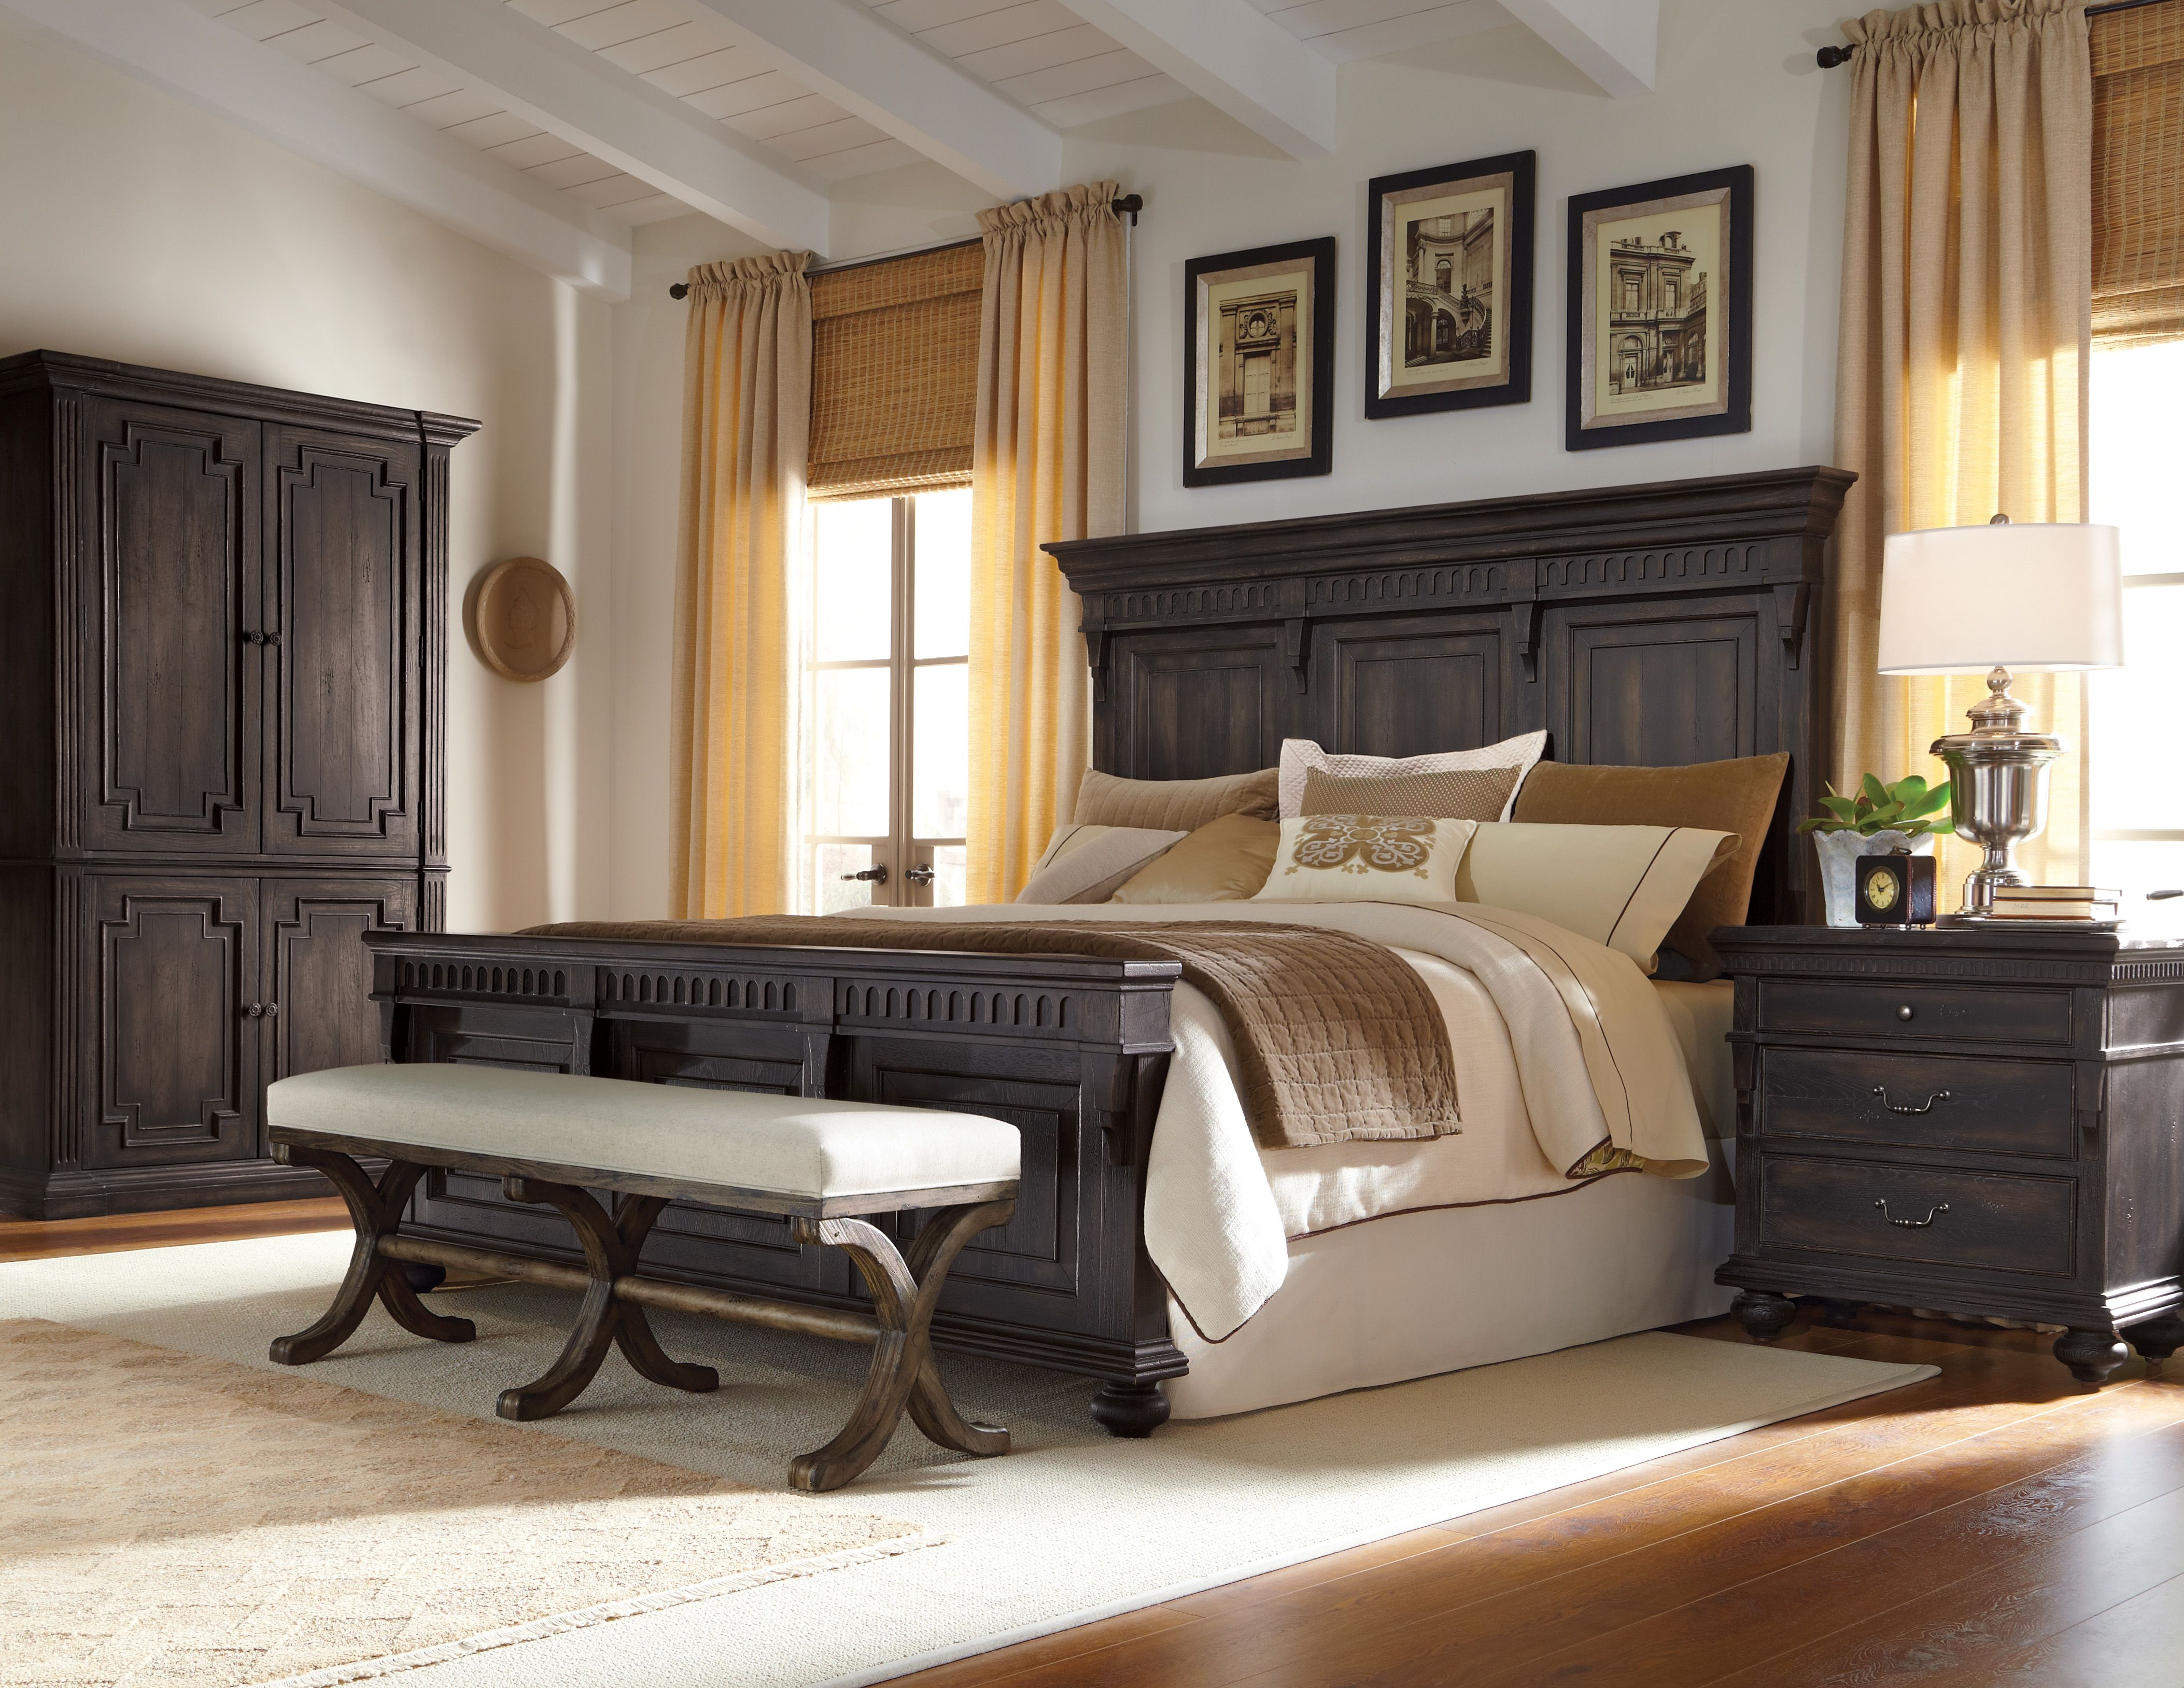 Matching Kentshire Bedroom Set From Accentrics Home By